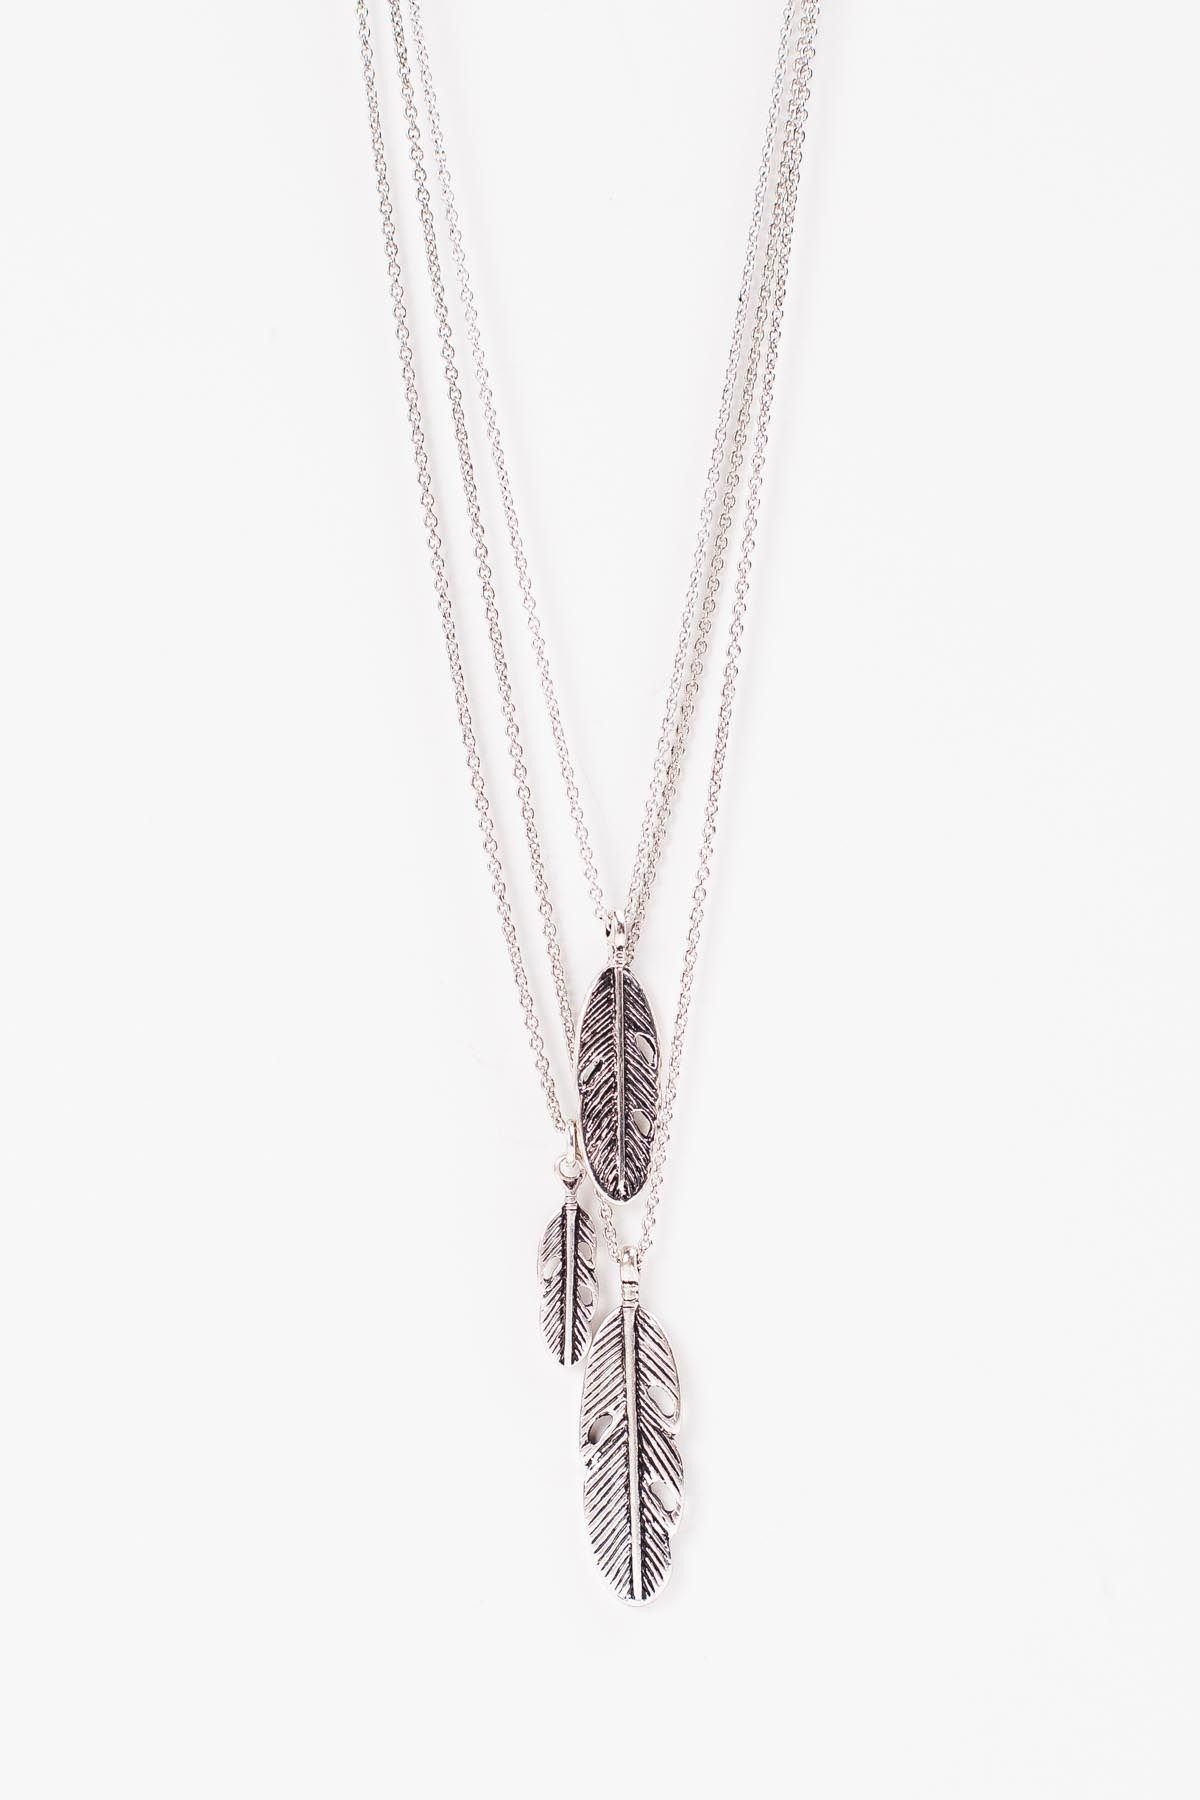 Drop Feather Necklace Three layered silver feathers in varying sizes fall  perfectly. Length  17